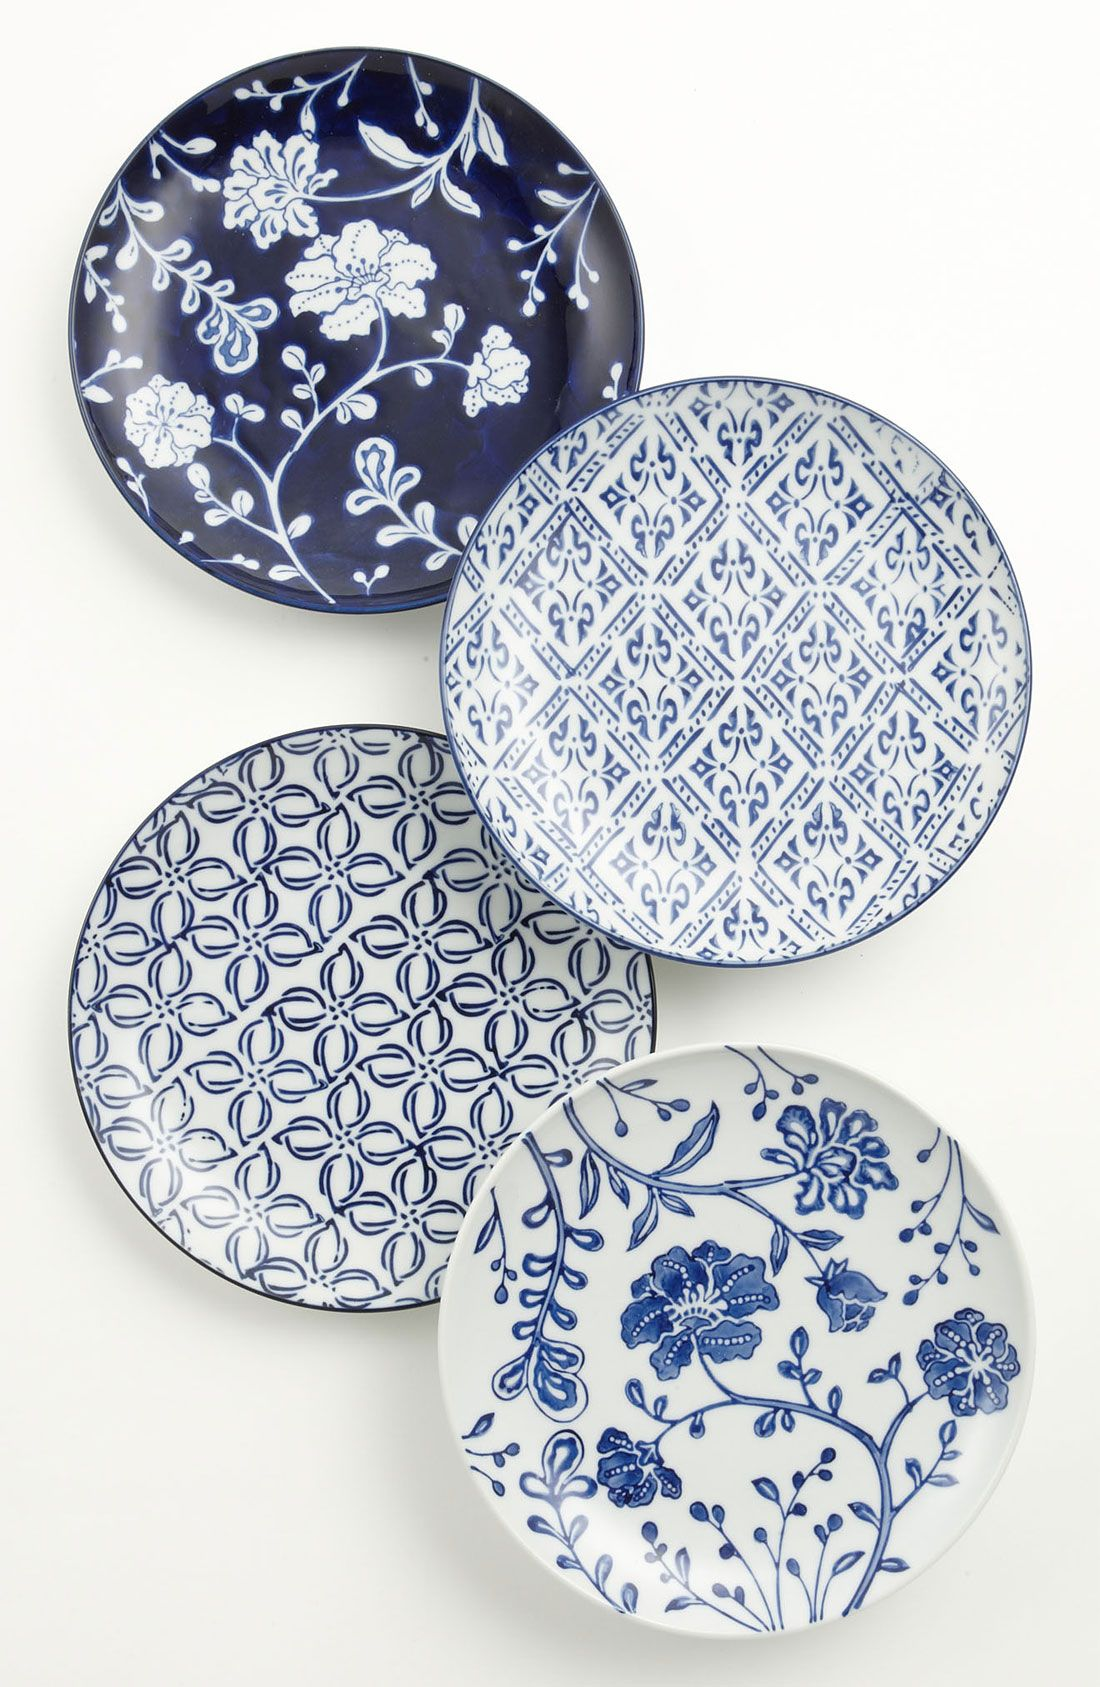 Free Shipping And Returns On Mixed Pattern Dessert Plates Set Of 4 At Nordstrom Com Classic Blue On White Designs Are H Vintage Plates Ceramic Plates Plates